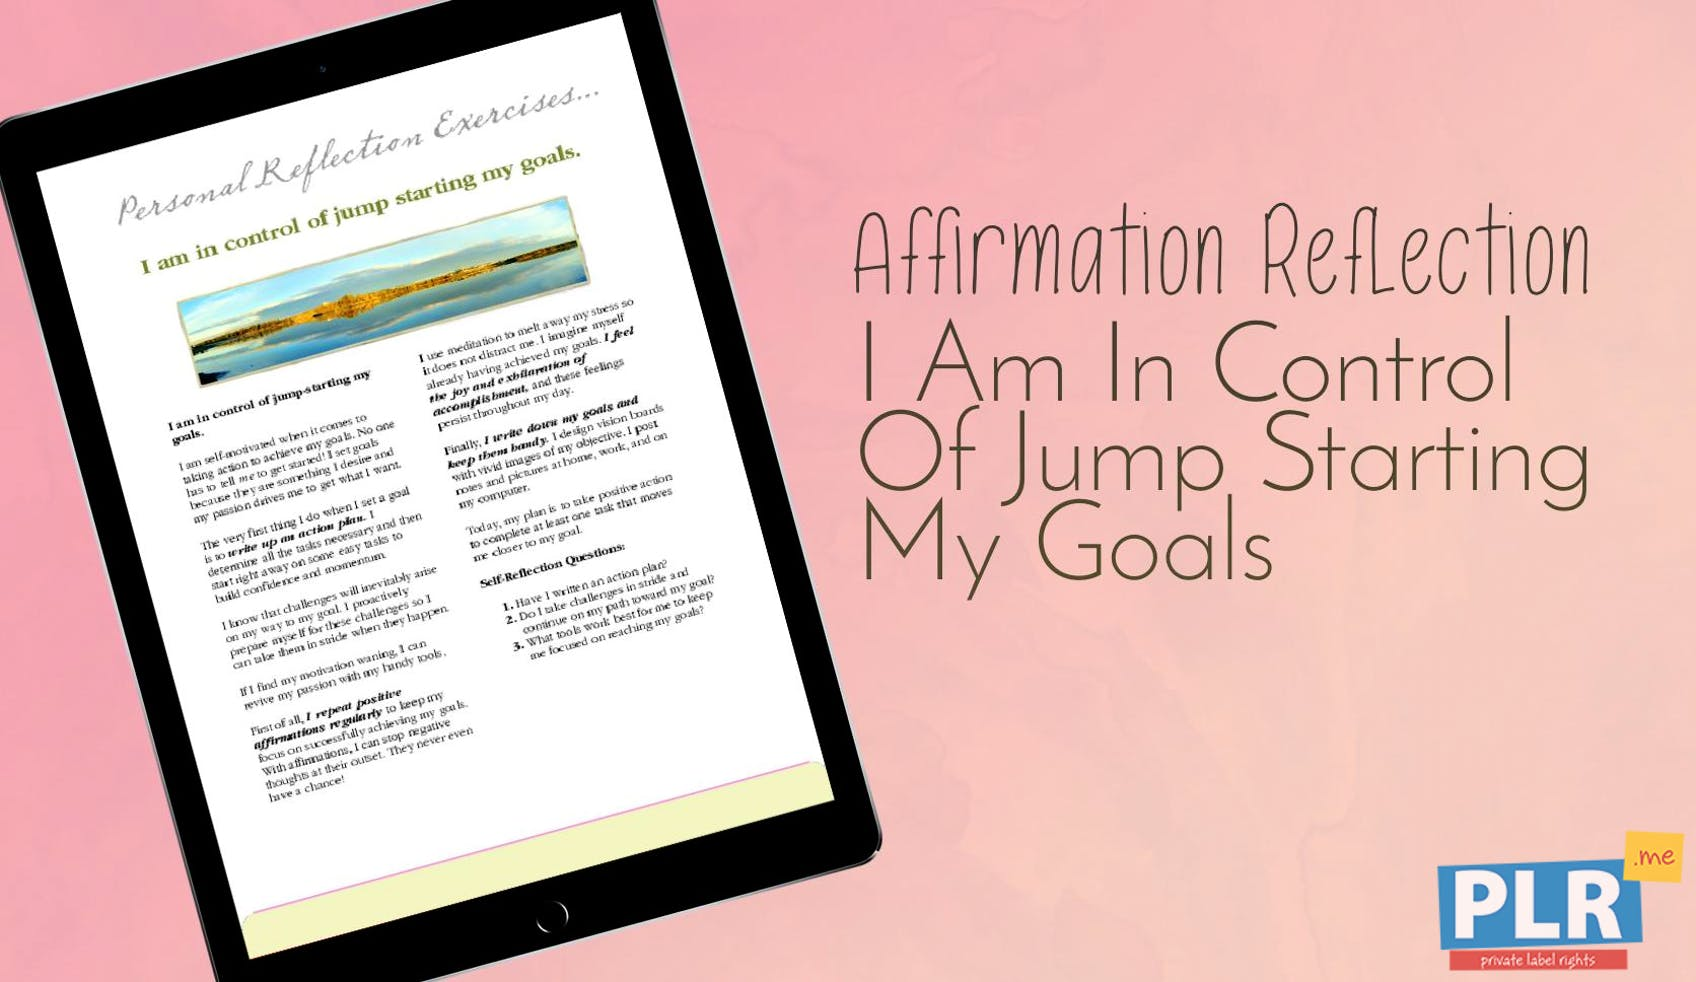 I Am In Control Of Jump Starting My Goals